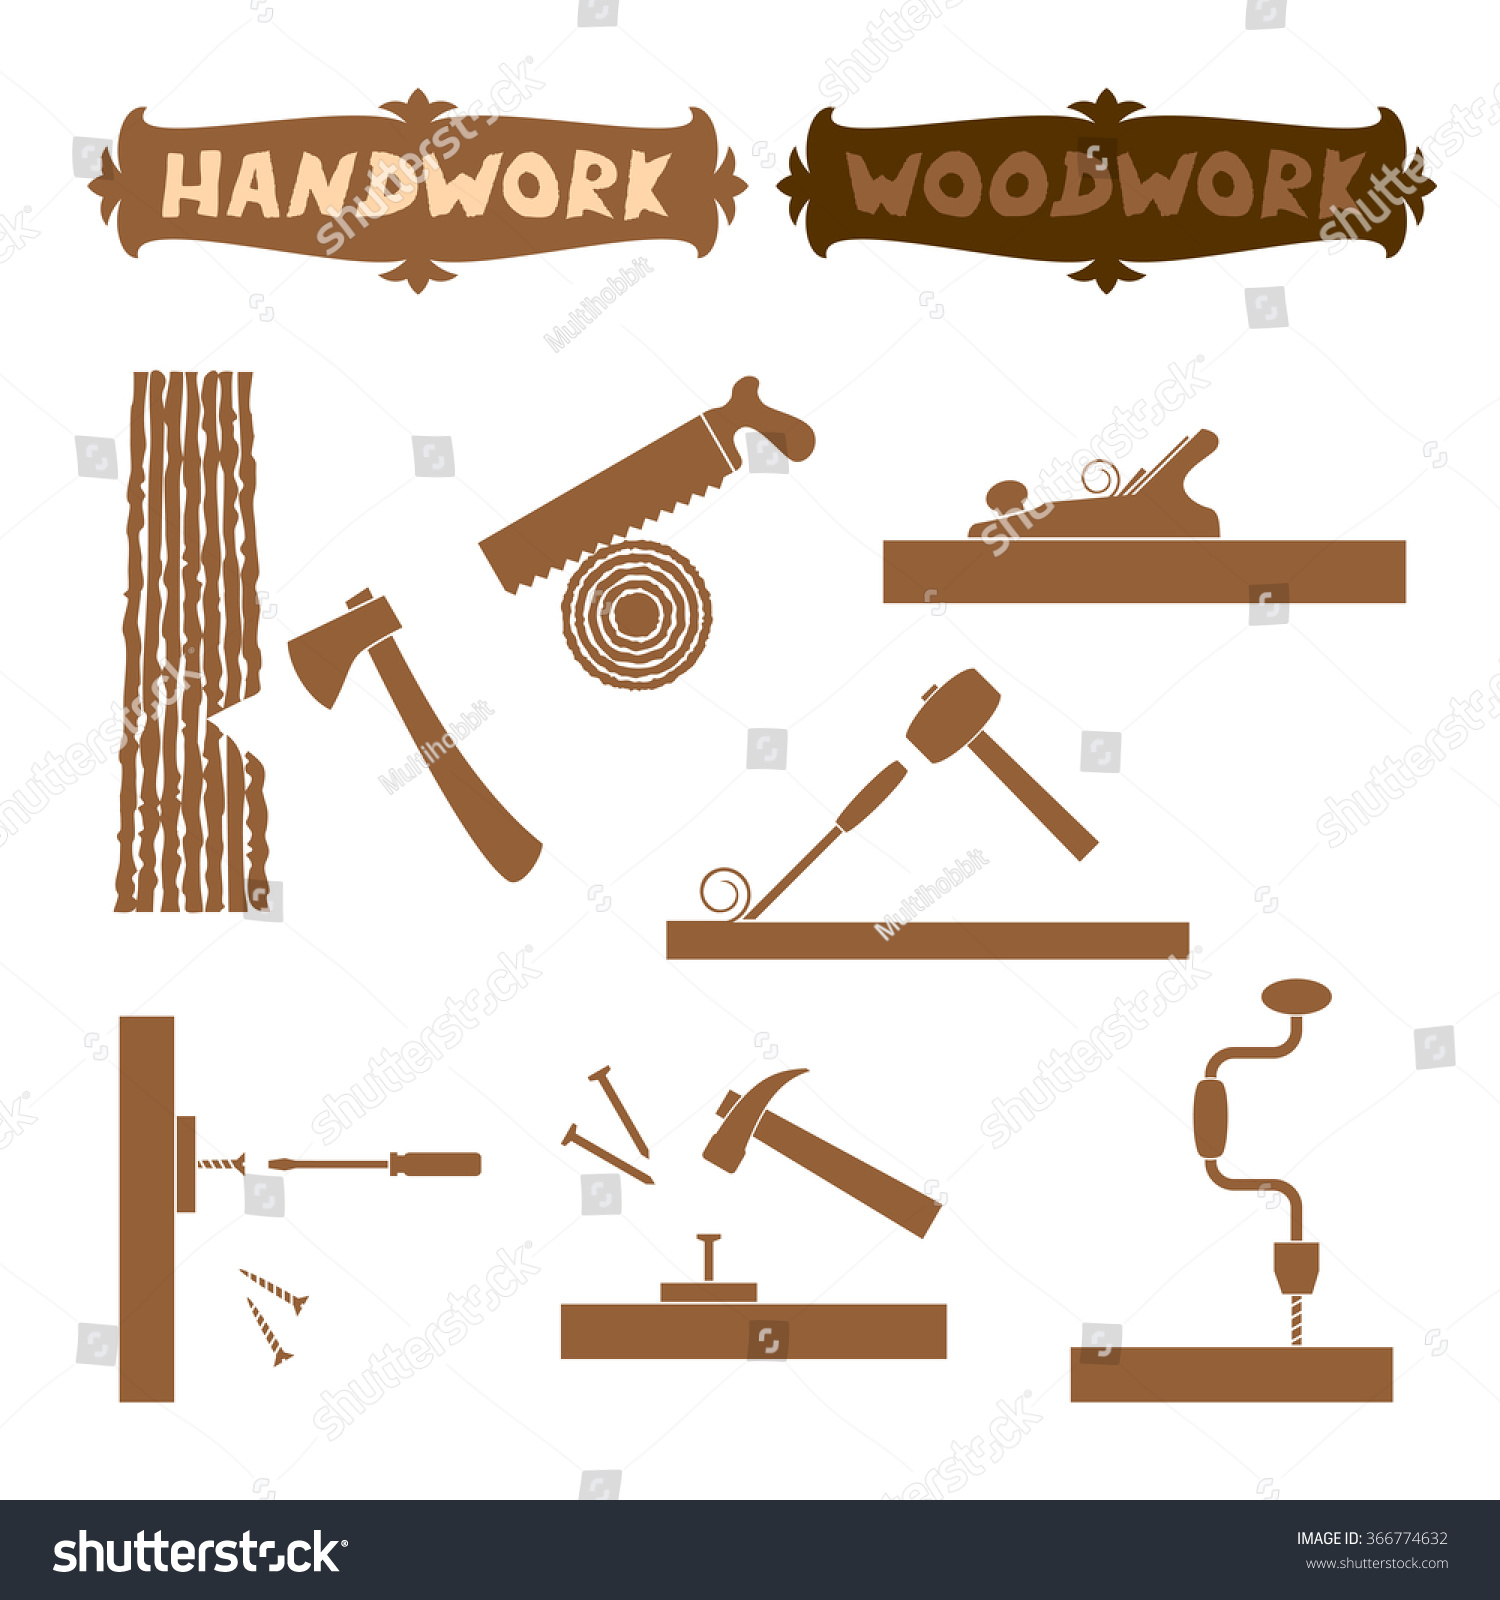 Vector Illustration Wood Work Hand Tools Stock Vector Royalty Free